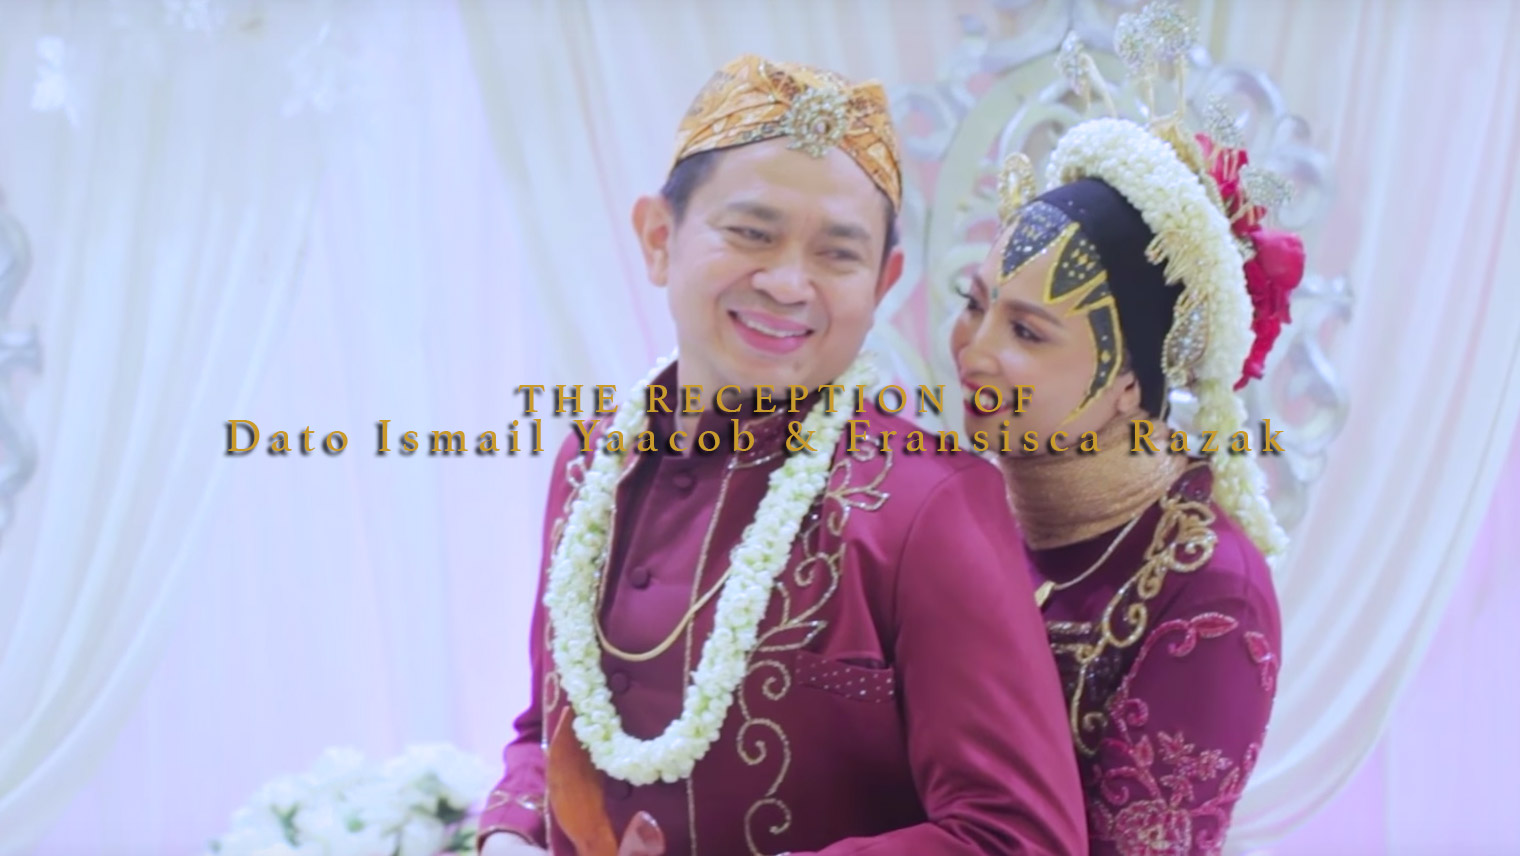 The Reception of Dato Ismail Yaacob & Fransisca Razak by Top Wedding videographer Malaysia, Kaio Studio